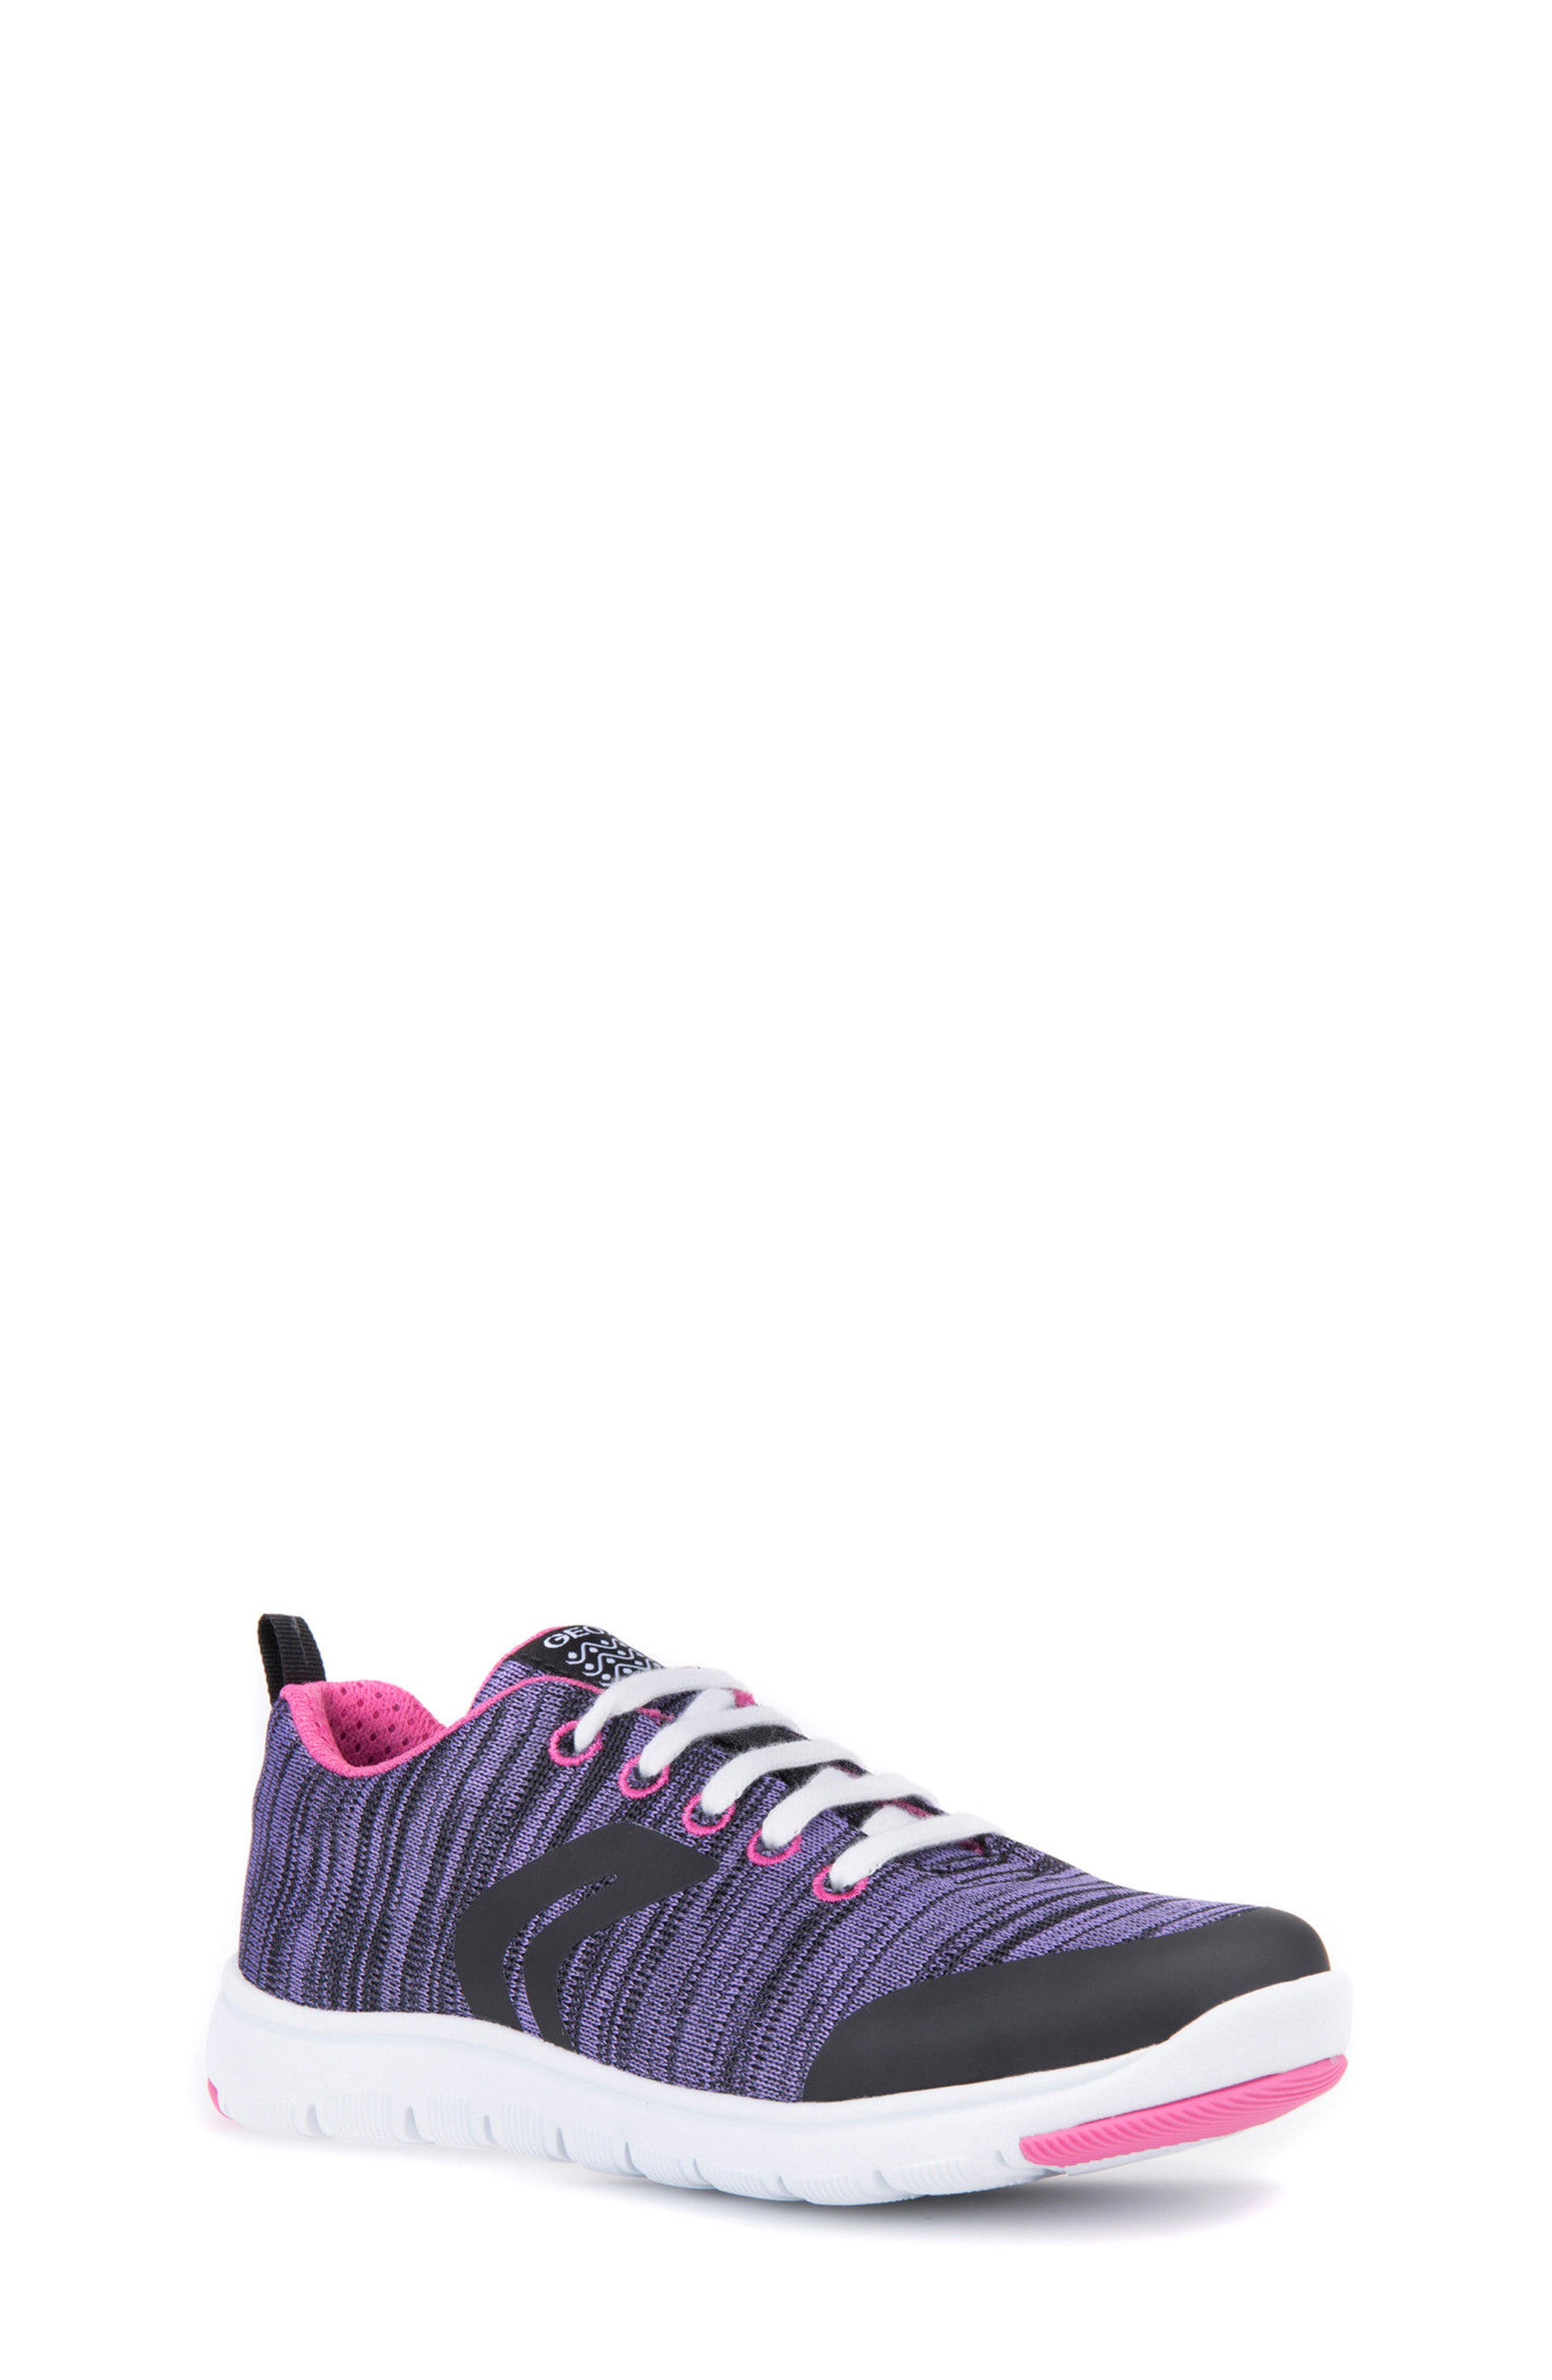 Xunday Performance Knit Low Top Sneaker,                         Main,                         color, Lilac